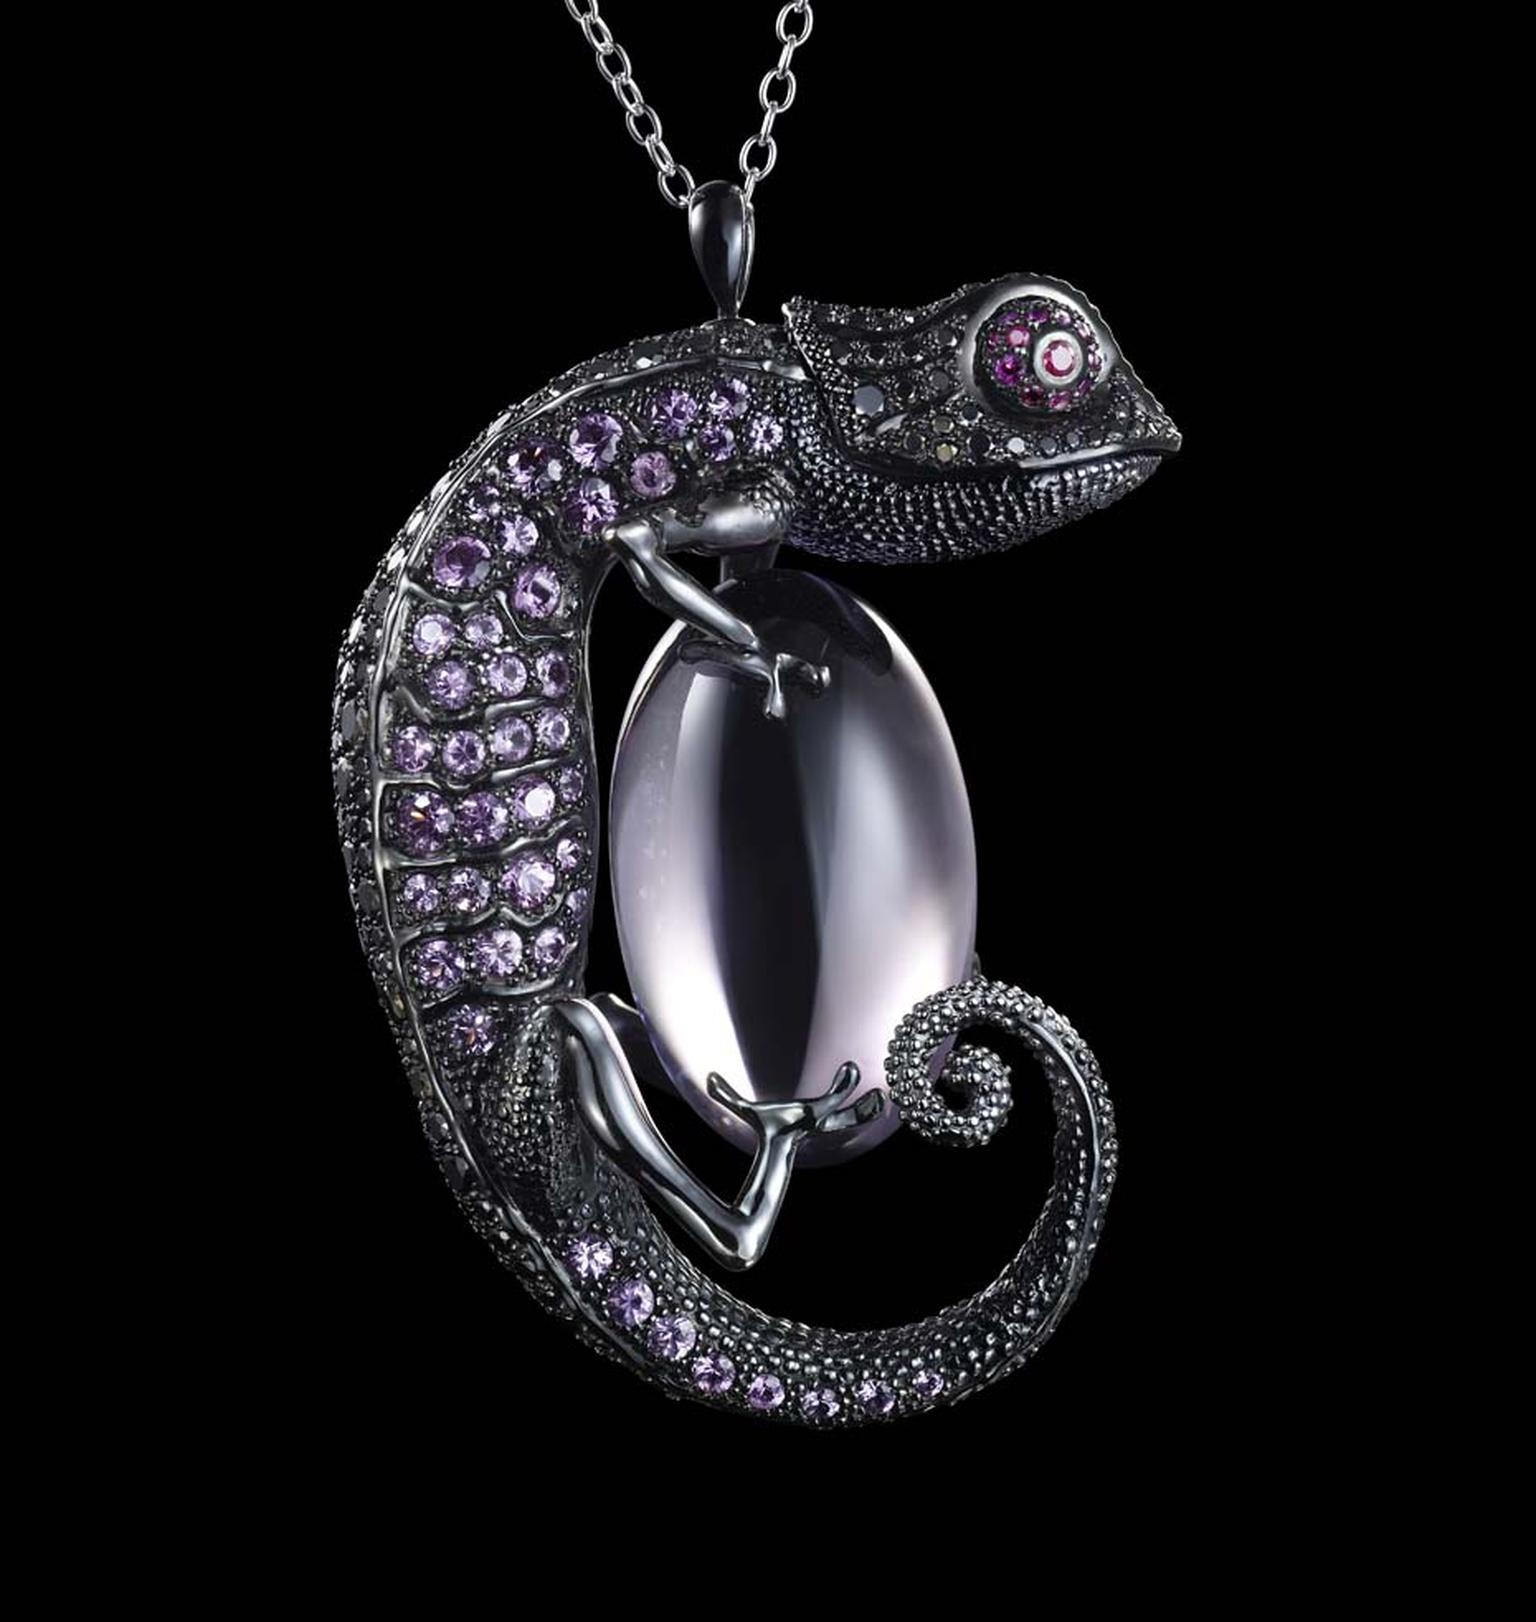 Dashi Namdakov Chameleon pendant in white gold and black rhodium with black diamonds, rubies, sapphires and amethysts.